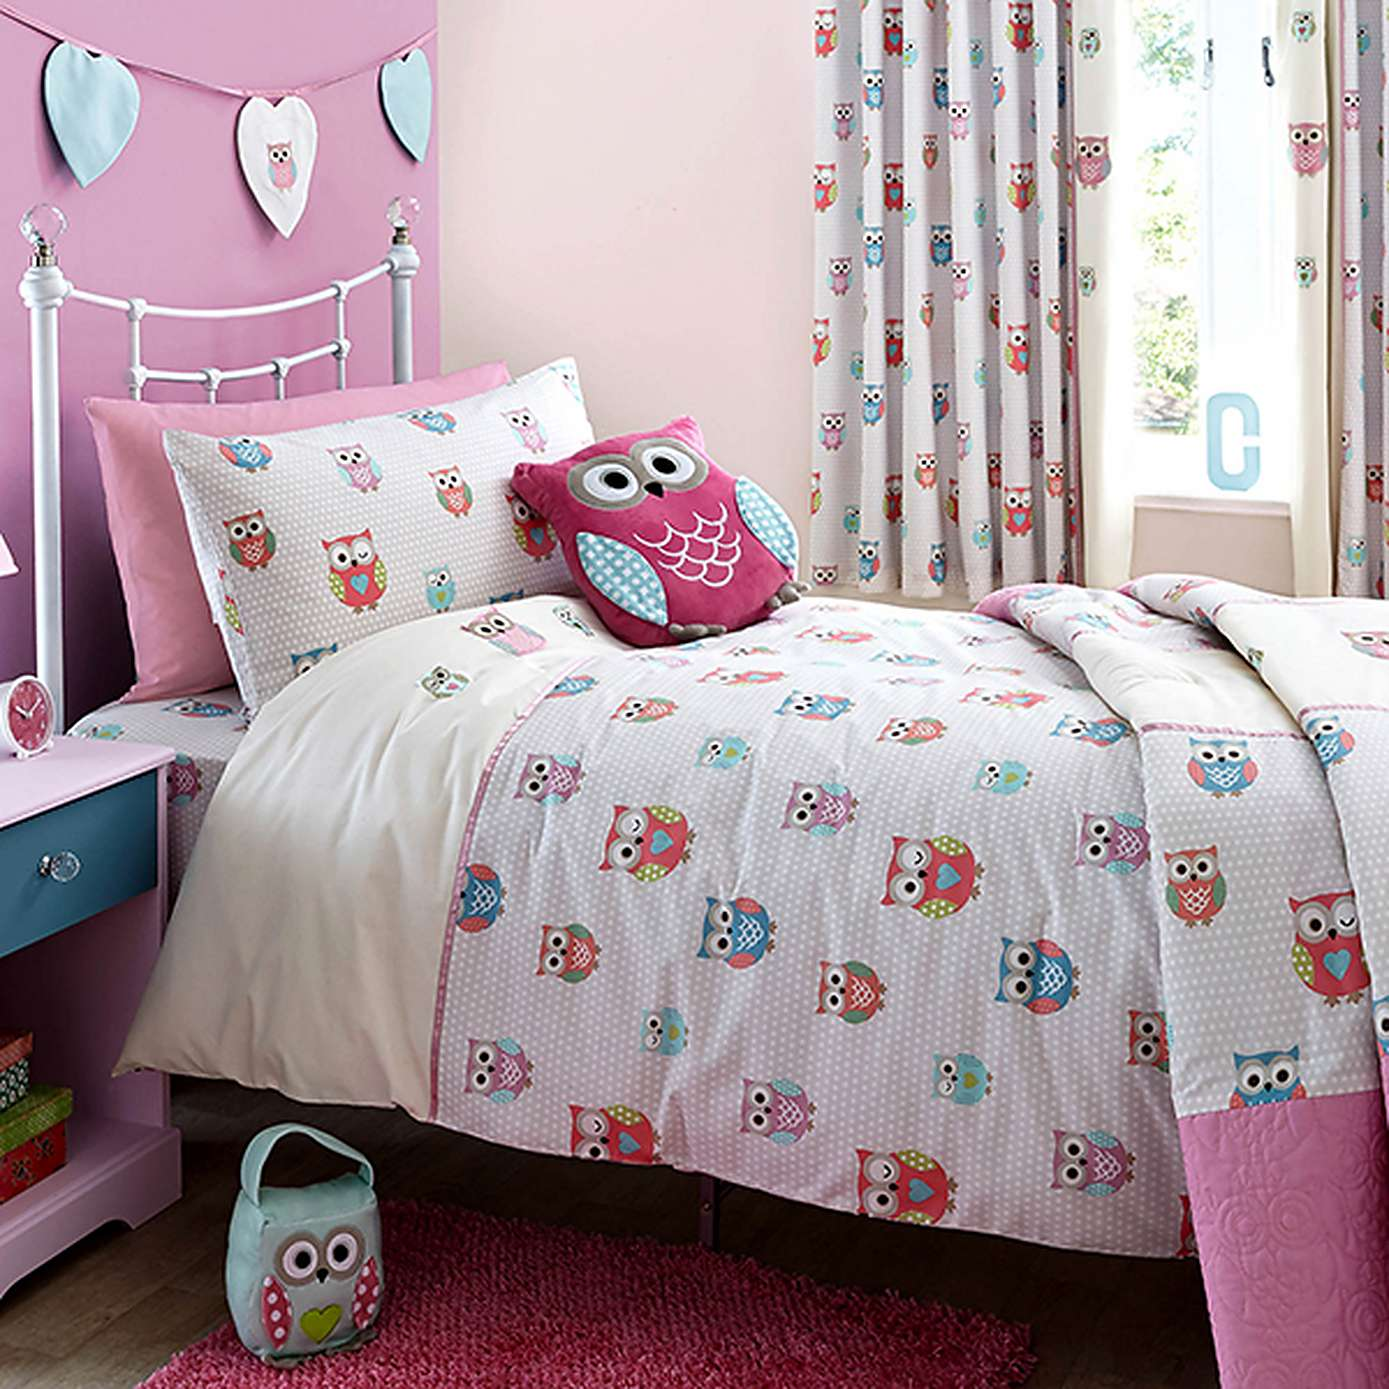 Design My Own Bedroom: Make Your Own Bedding